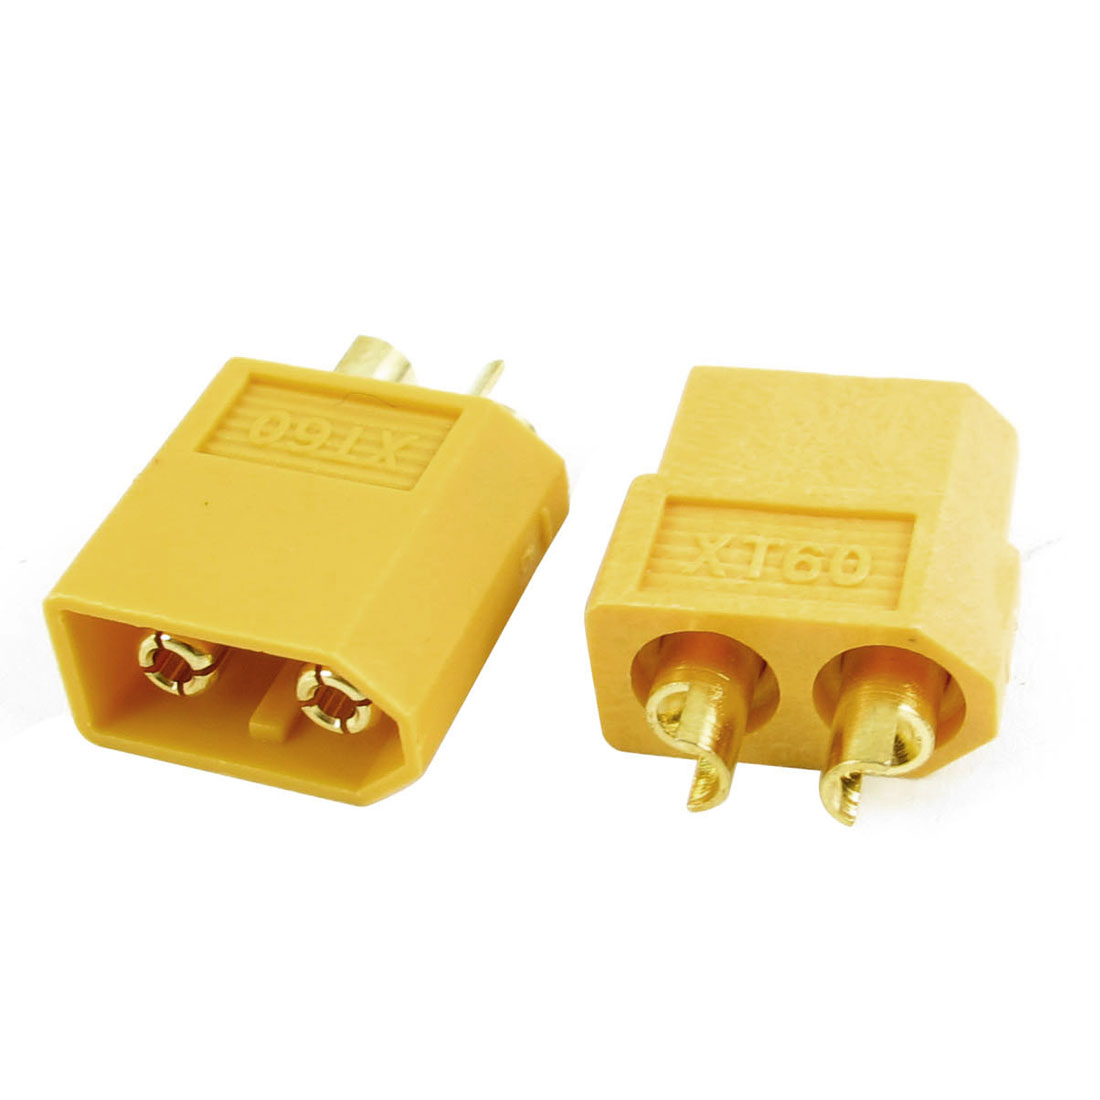 RC Model Part Male Female XT60 Plug Connector Adapter Yellow 4mm Pair